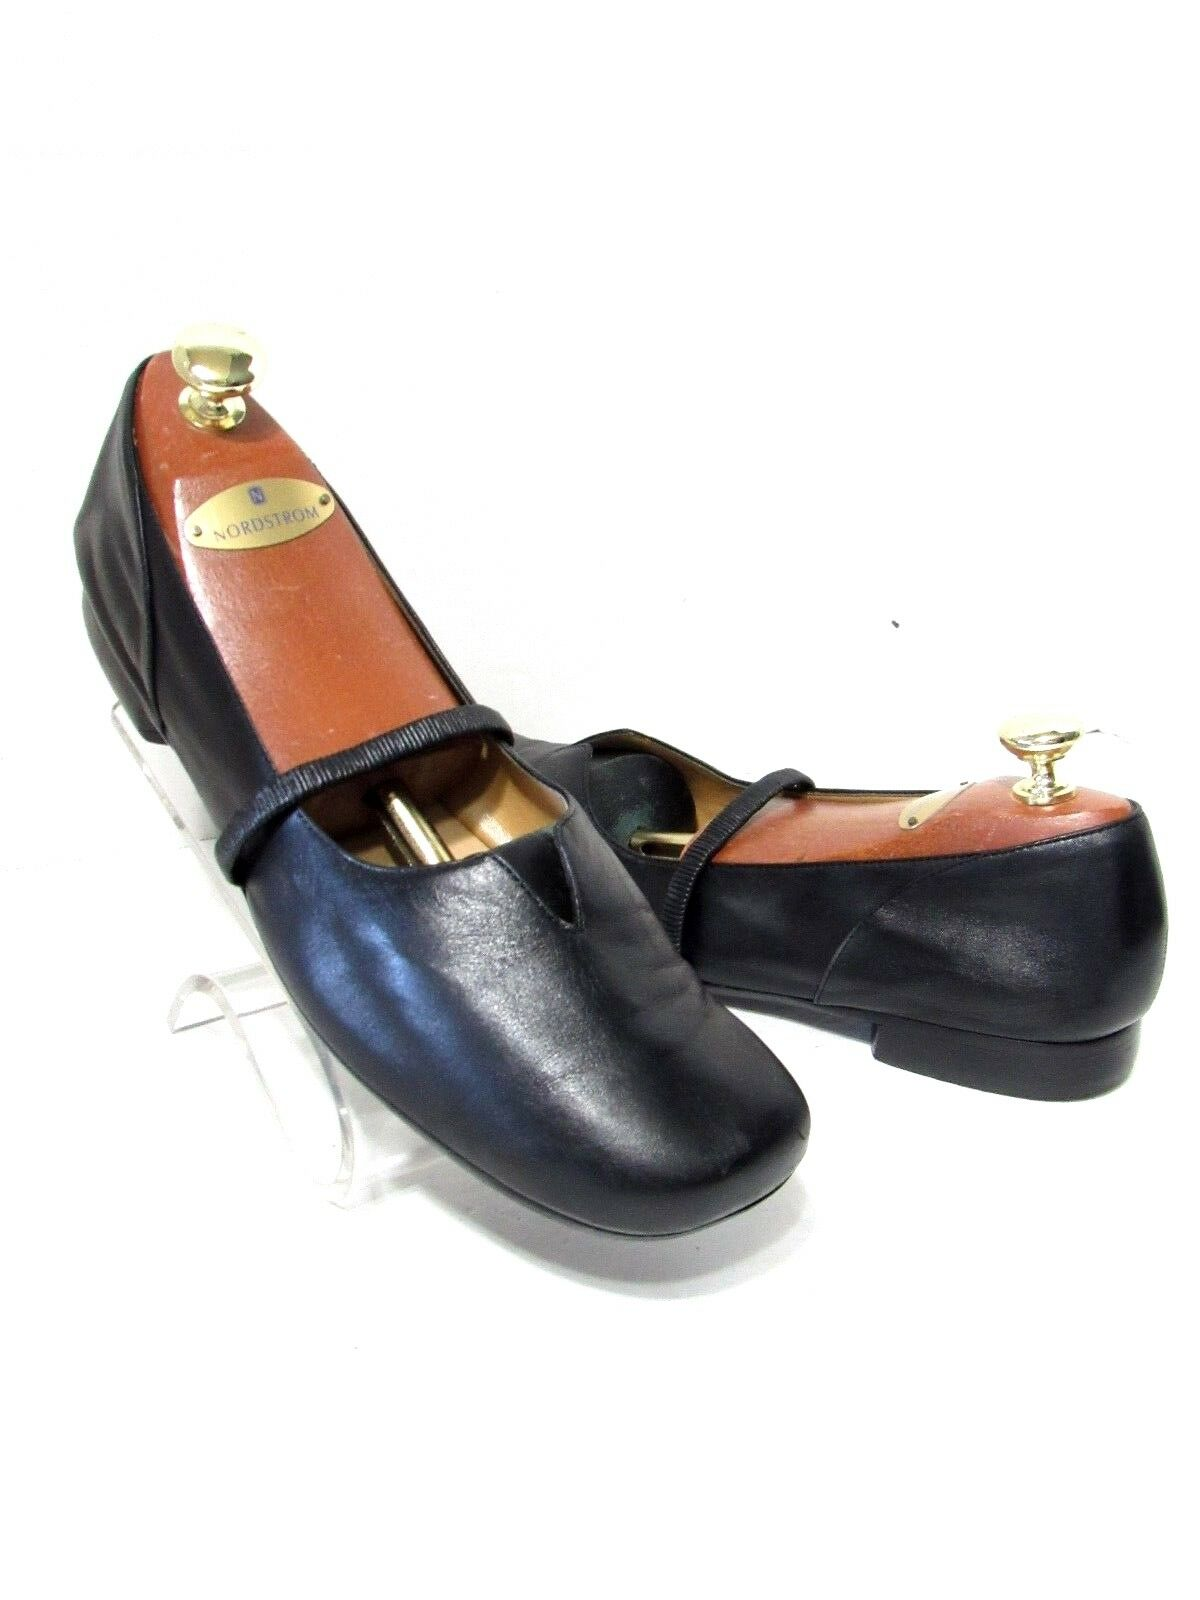 NORDSTROM Rose Soft Black Leather Mary Janes Comfort Shoes SZ 11 M